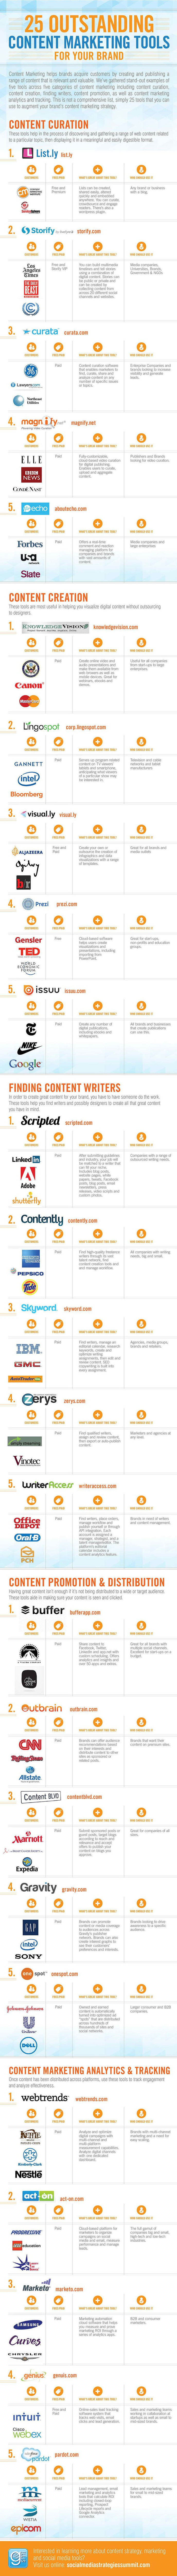 25 Tools To Boost Your Content Strategy [Infographic] - Business 2 Community